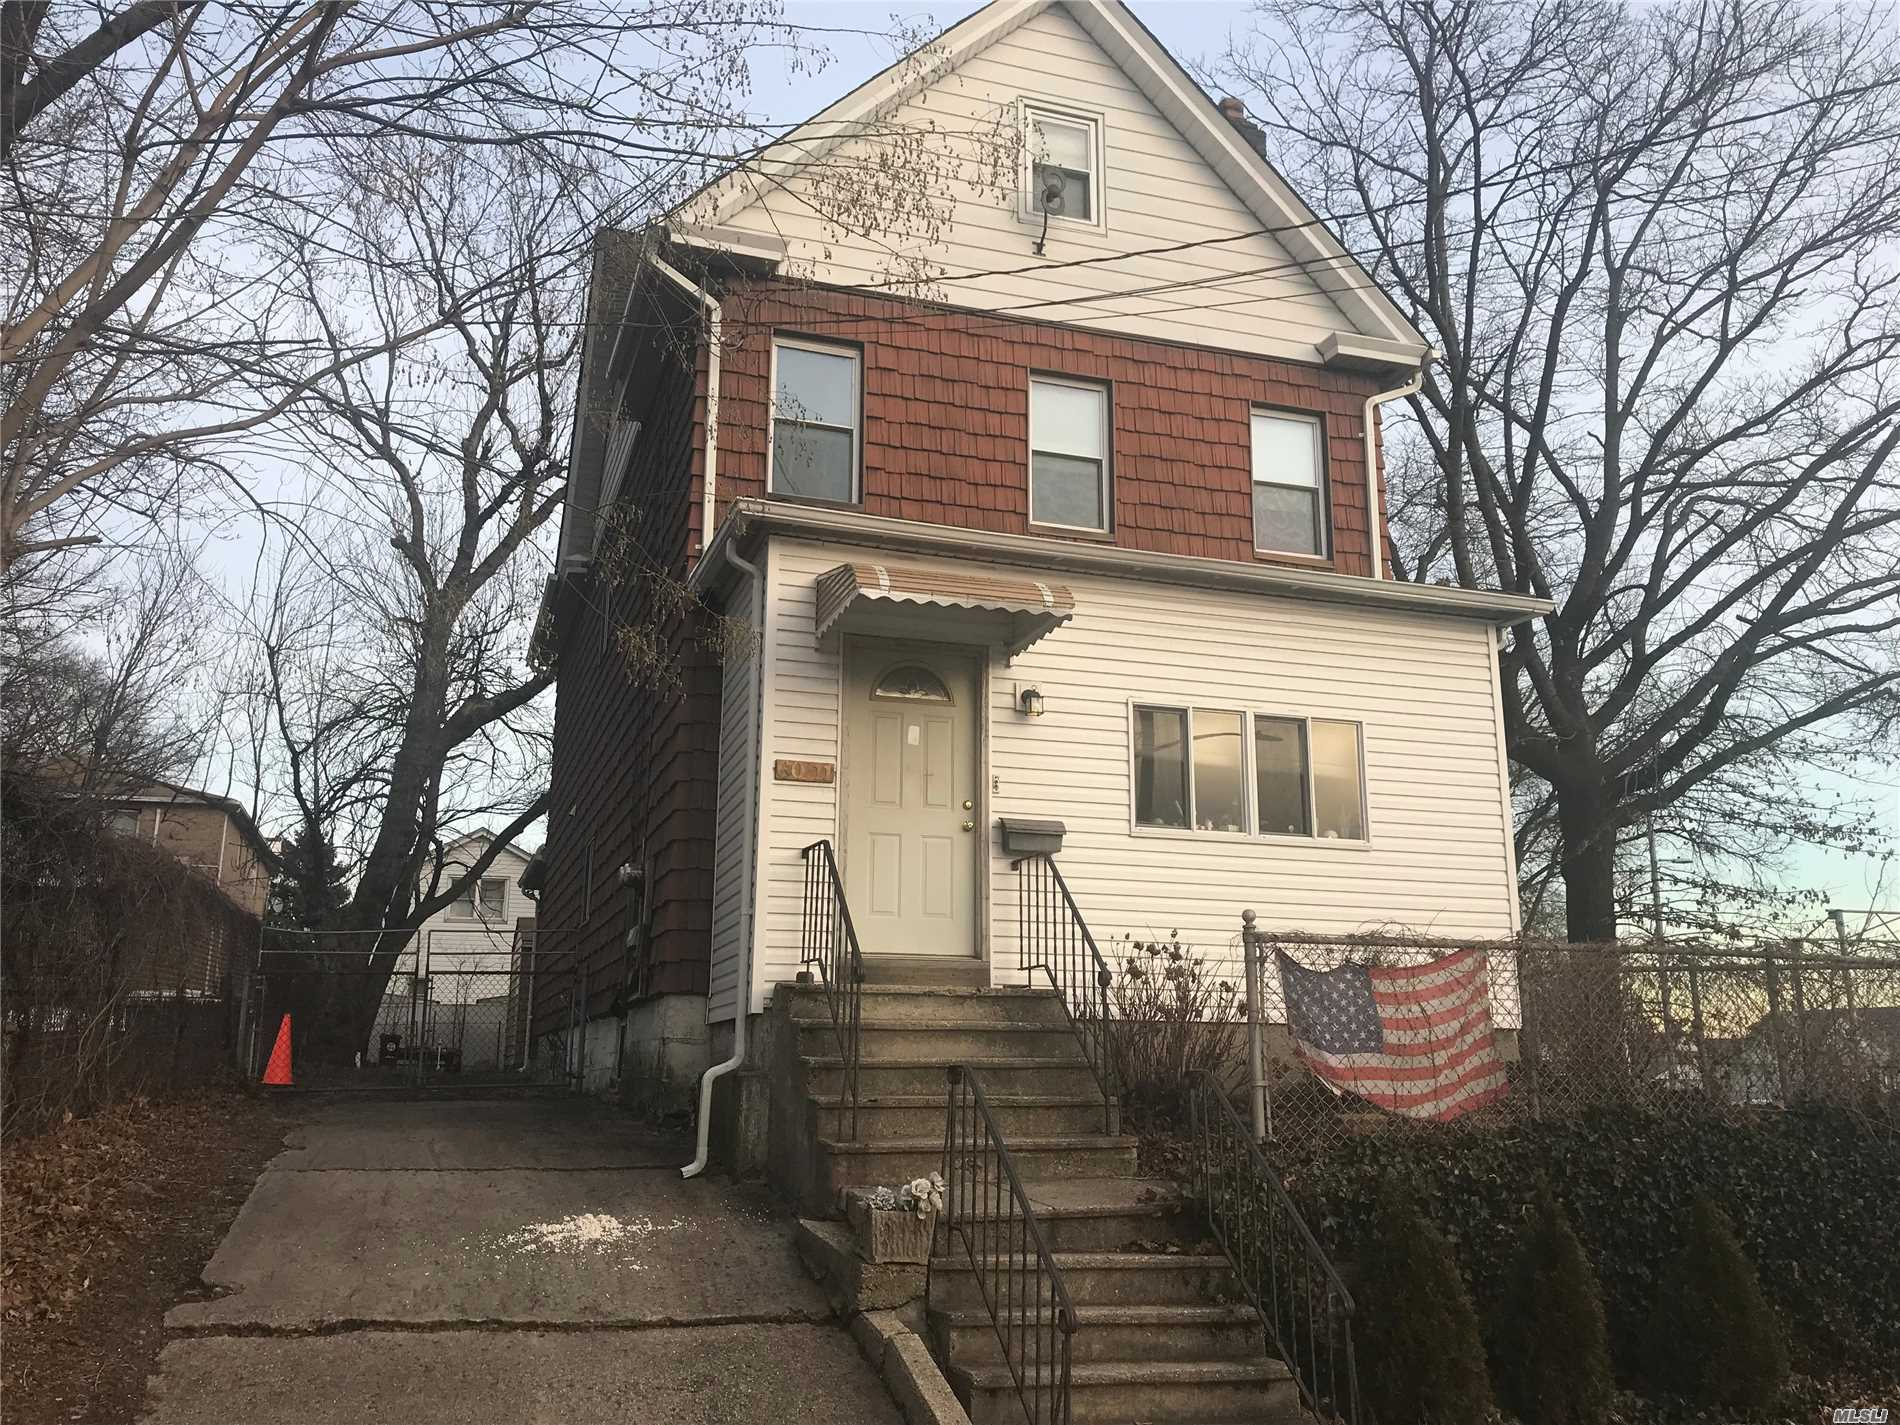 Large Two Family 167St. H.H.Expwy. Many Buses, Long Private Driveway. 2nd Floor, 3 B/R Duplex. Vacant On Title! P.S. 163.....Usa Two Family....Large House...4 Bedrooms, Three Floors + Basement W/ Sep Entrance. All Separate Heat, Hot Water And Electric. Ideal For Living Or Investment